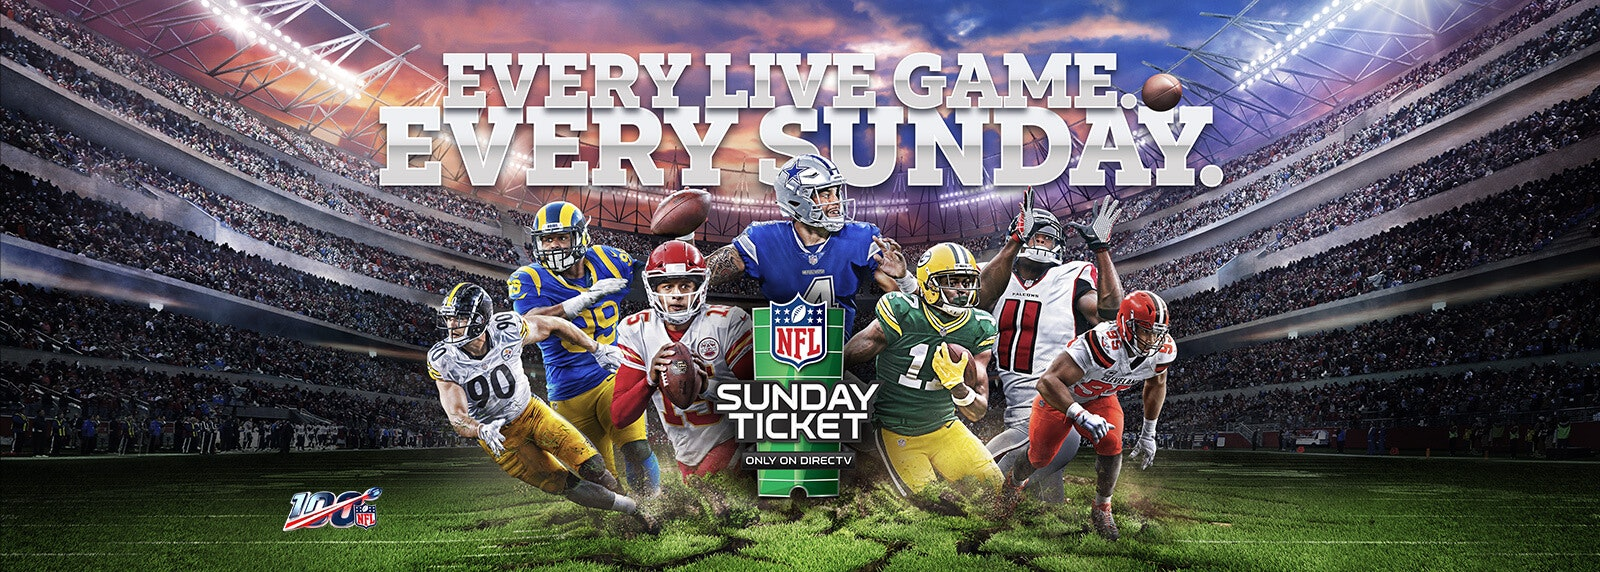 watch eagles vs vikings live stream nfl sunday ticket